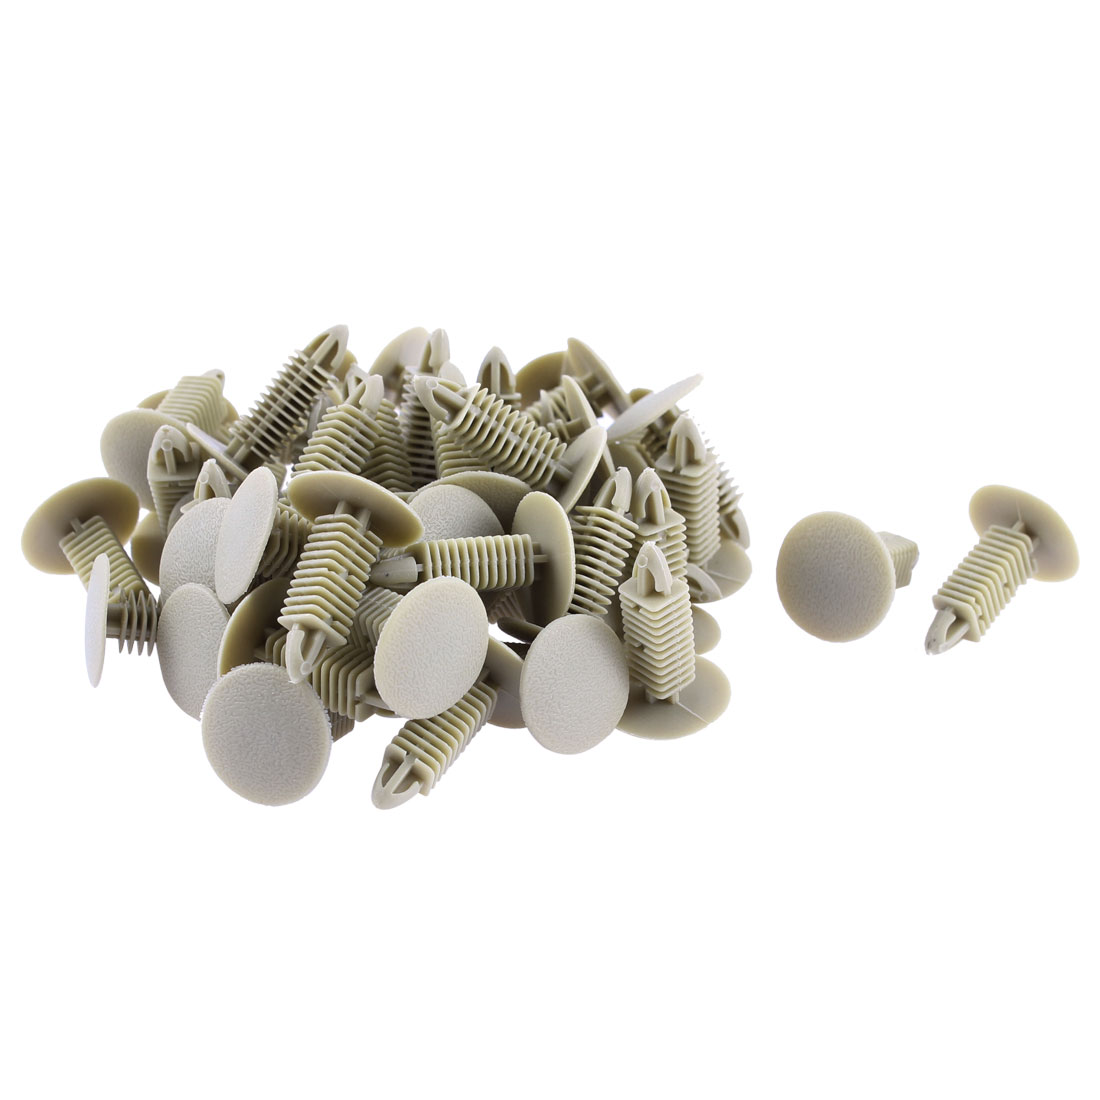 Car Fender Bumper Push Type Plastic Rivets Fastener Retainer Clips Gray 50 Pcs